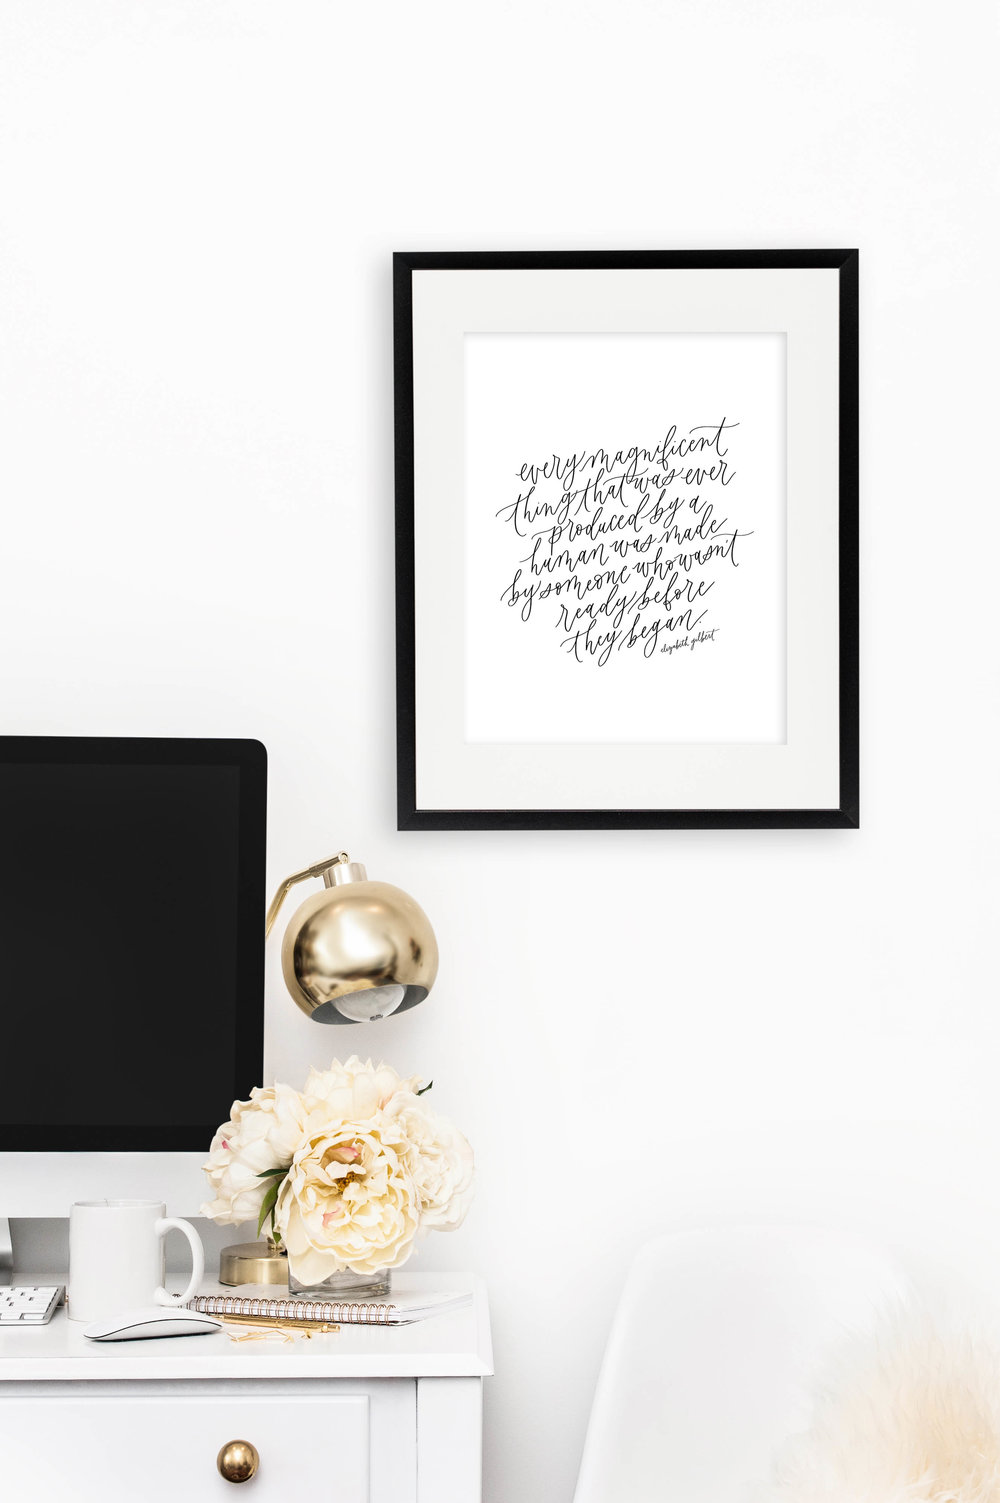 January Free Printable from Jennifer Bianca Calligraphy (jenniferbianca.com)